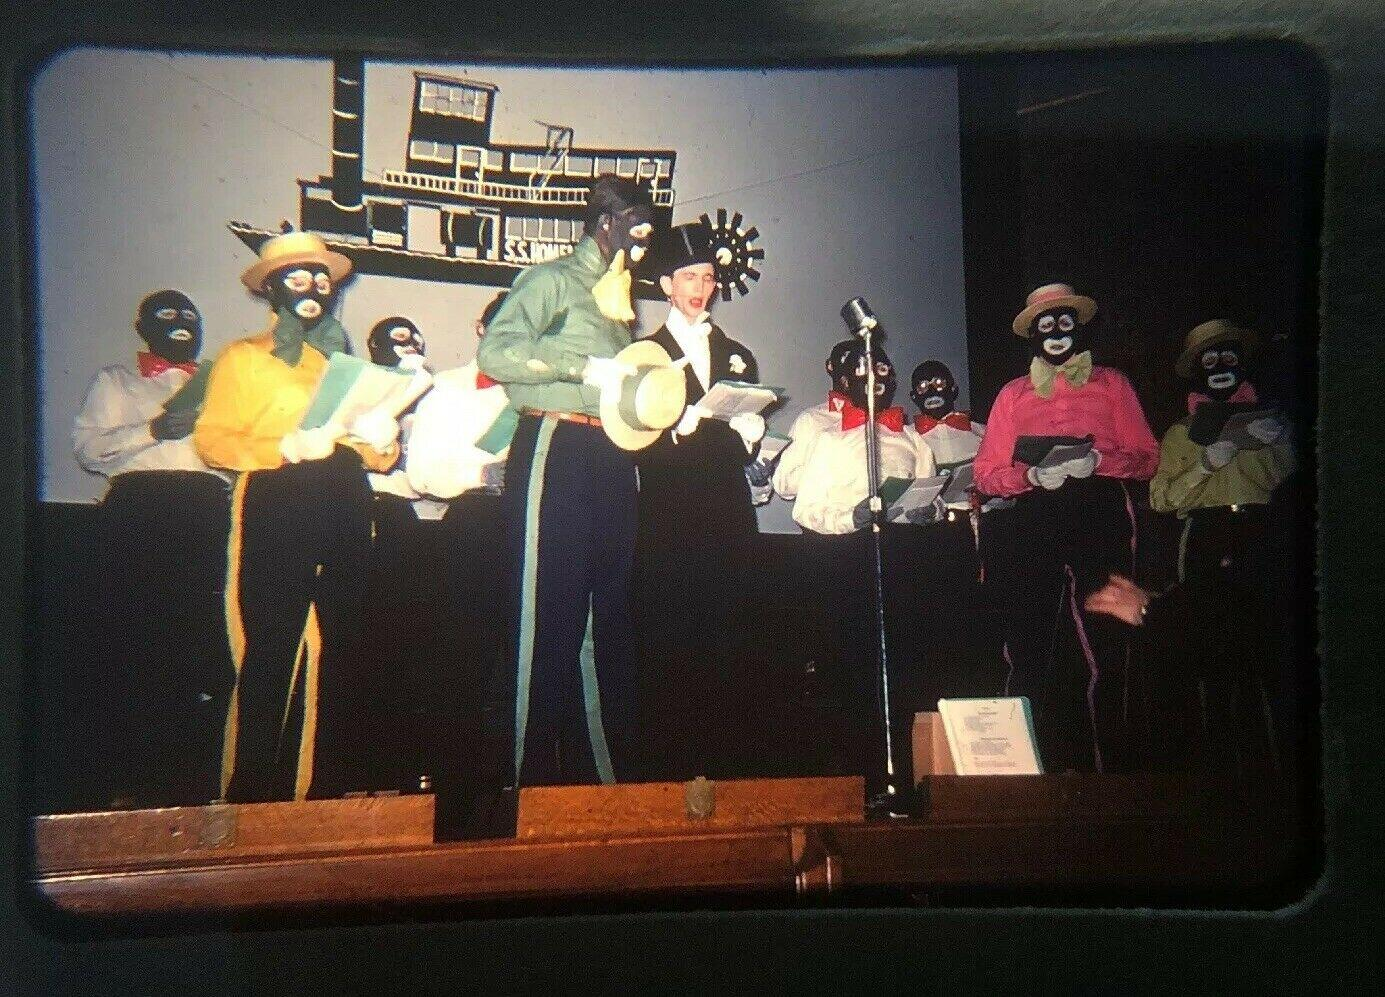 A late 1950s Community Minstrel Show in a Catholic School Auditorium